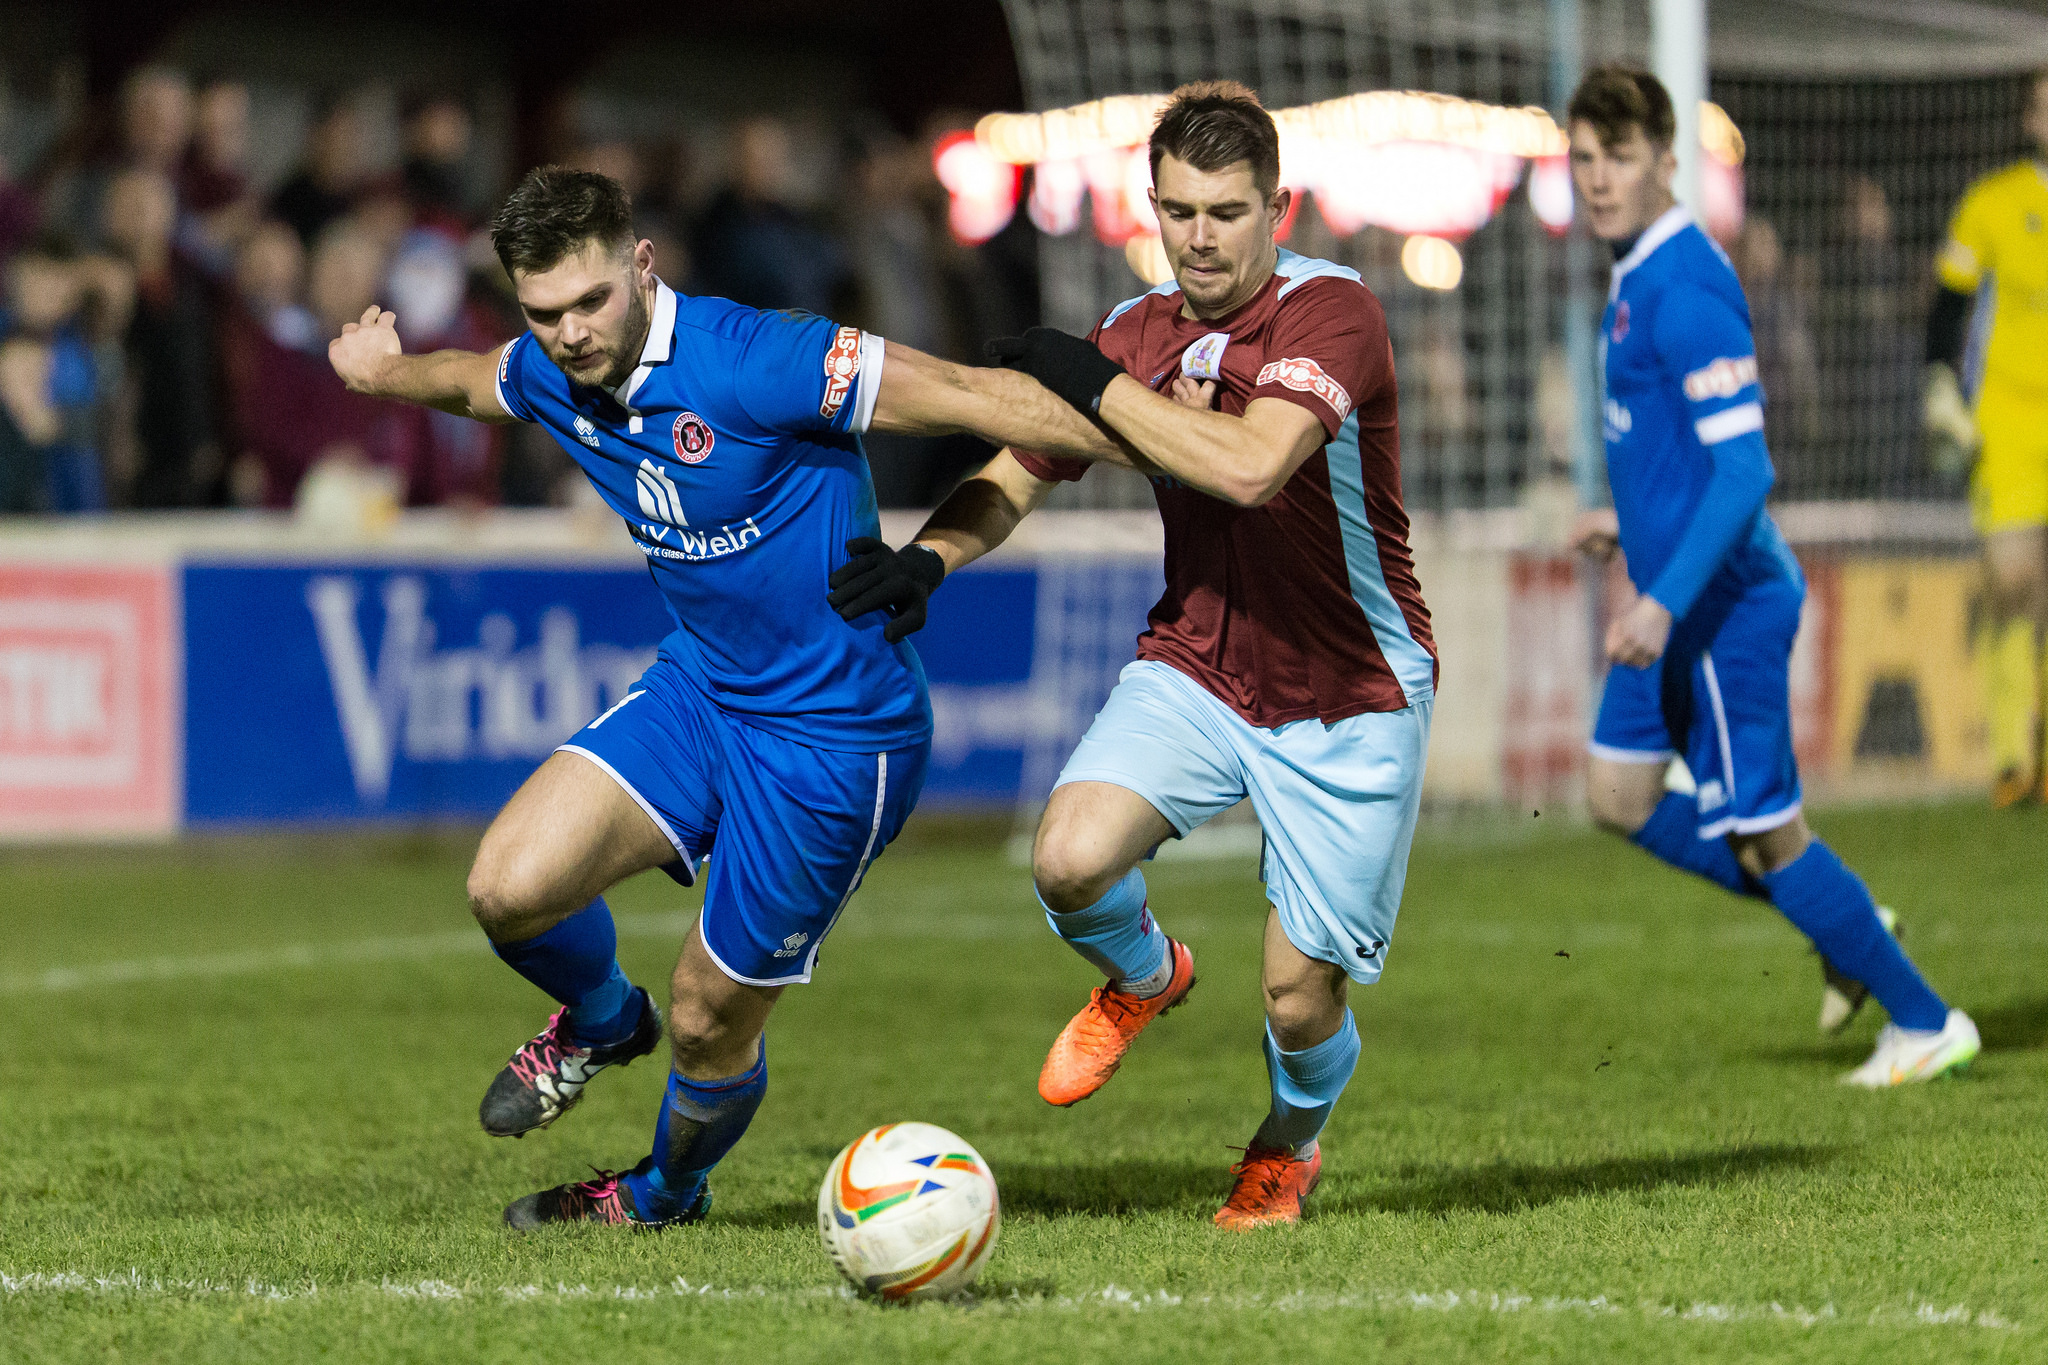 TREBLE: Ross Staley (claret kit) helped himself to three goals as Taunton Town won at AFC Totton. Pic: Tim Norbury